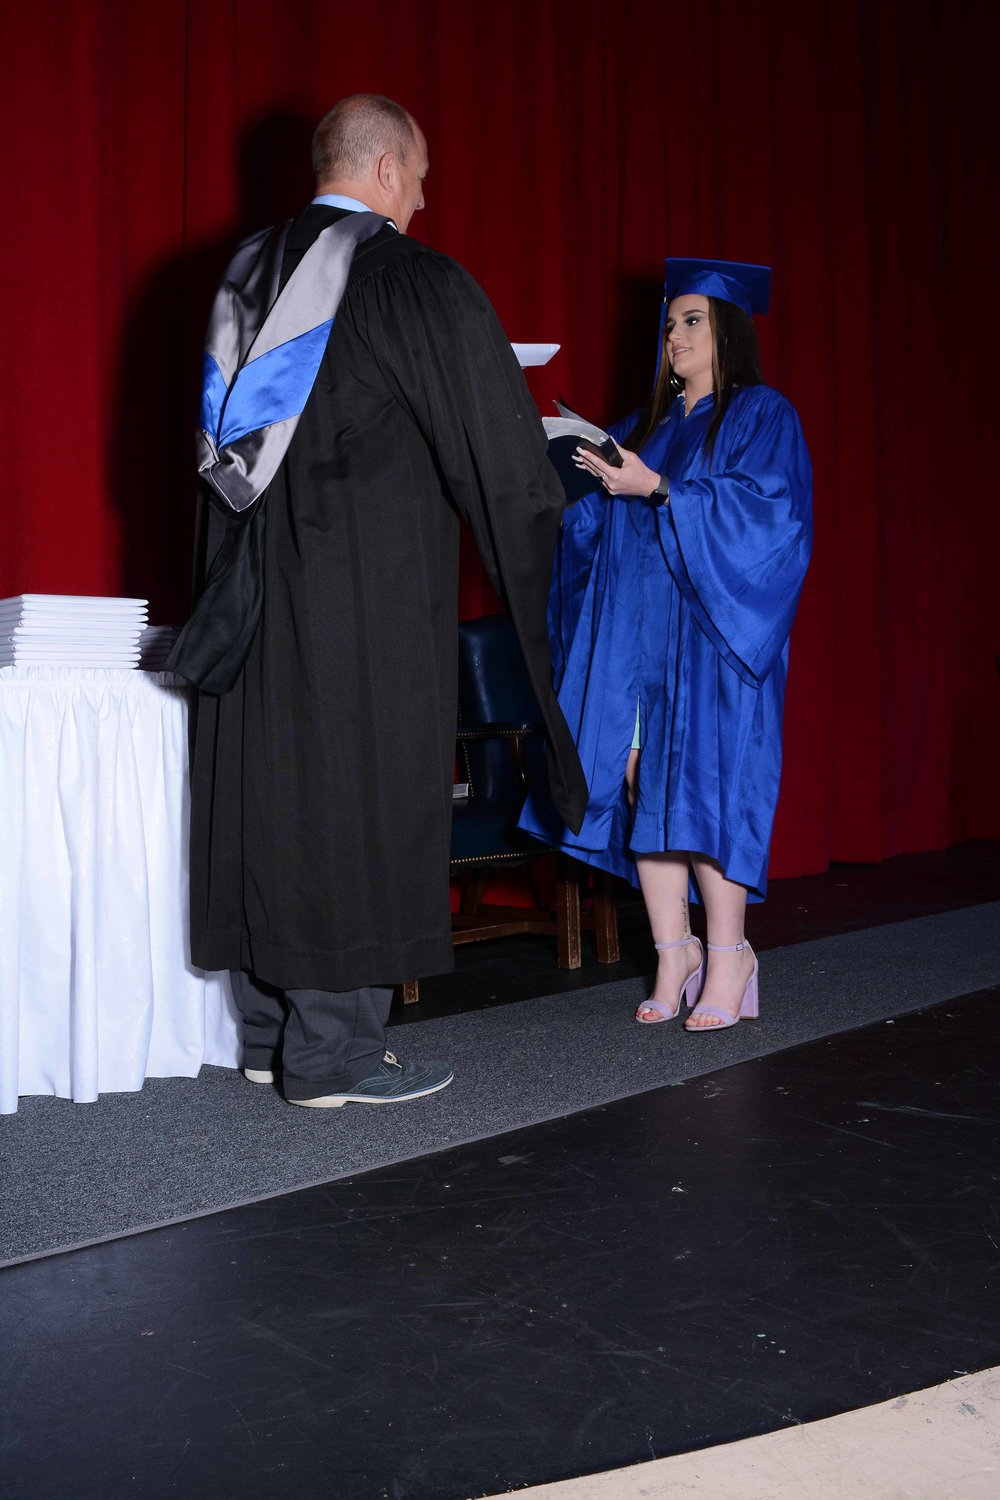 May14 Commencement76.jpg